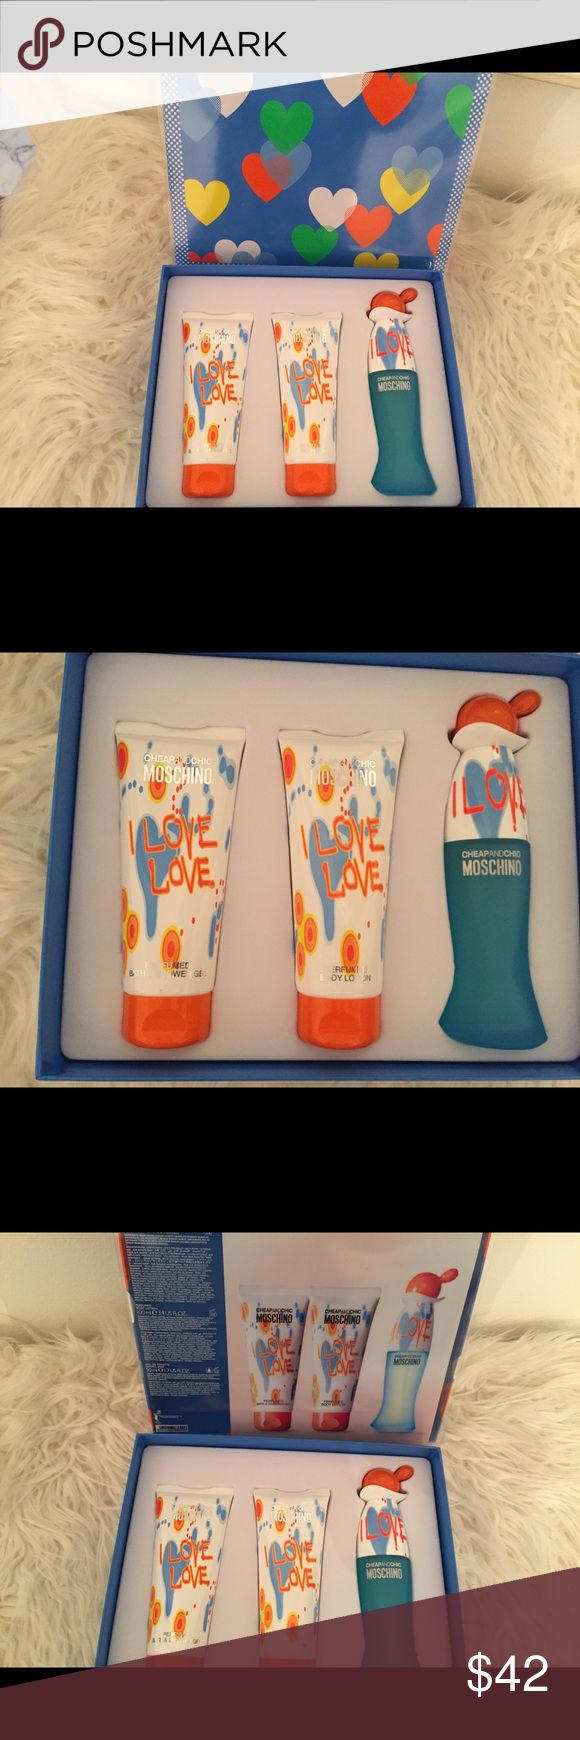 Moschino I love, love Cheap and Chic set NIB Launched by the design house of Moschino, this CHEAP AND CHIC I love love 3 piece gift set includes Eau de Toilette Spray, Perfumed Body Lotion, and Perfumed Bath & Shower Gel  This Gift Set Contains:  (1) 1 x 1.7 oz / 50 ml EDT Eau de Toilette Natural Spray / Vaporisateur (2) 1 x 3.4 oz / 100 ml Perfumed Bath & Shower Gel (3) 1 x 3.4 oz / 100 ml Perfumed Body Lotion / Lait Perfume Pour le Corps Moschino Other